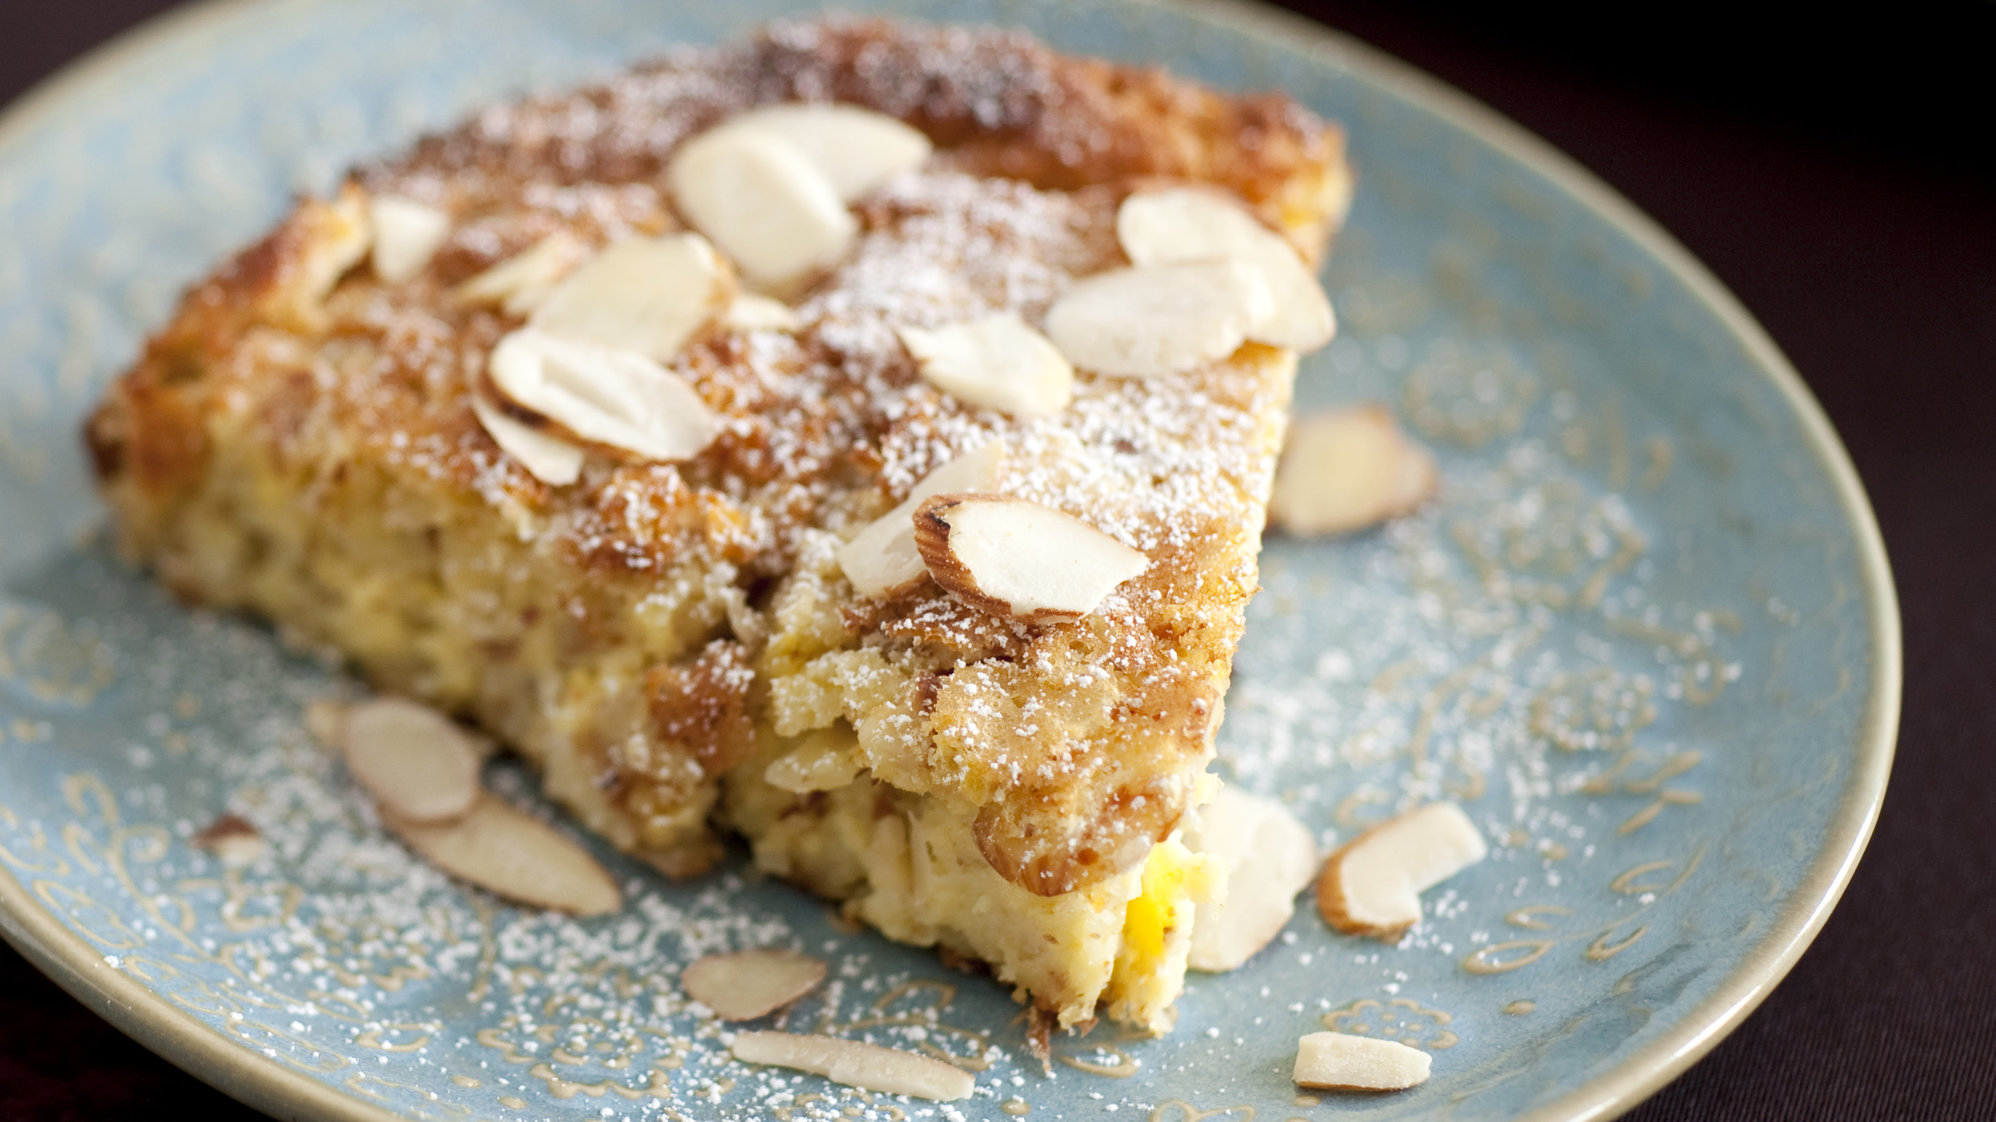 Lemon-Almond Tart Computer Wallpapers, Sfondi Per Desktop | 1996x1122 ...